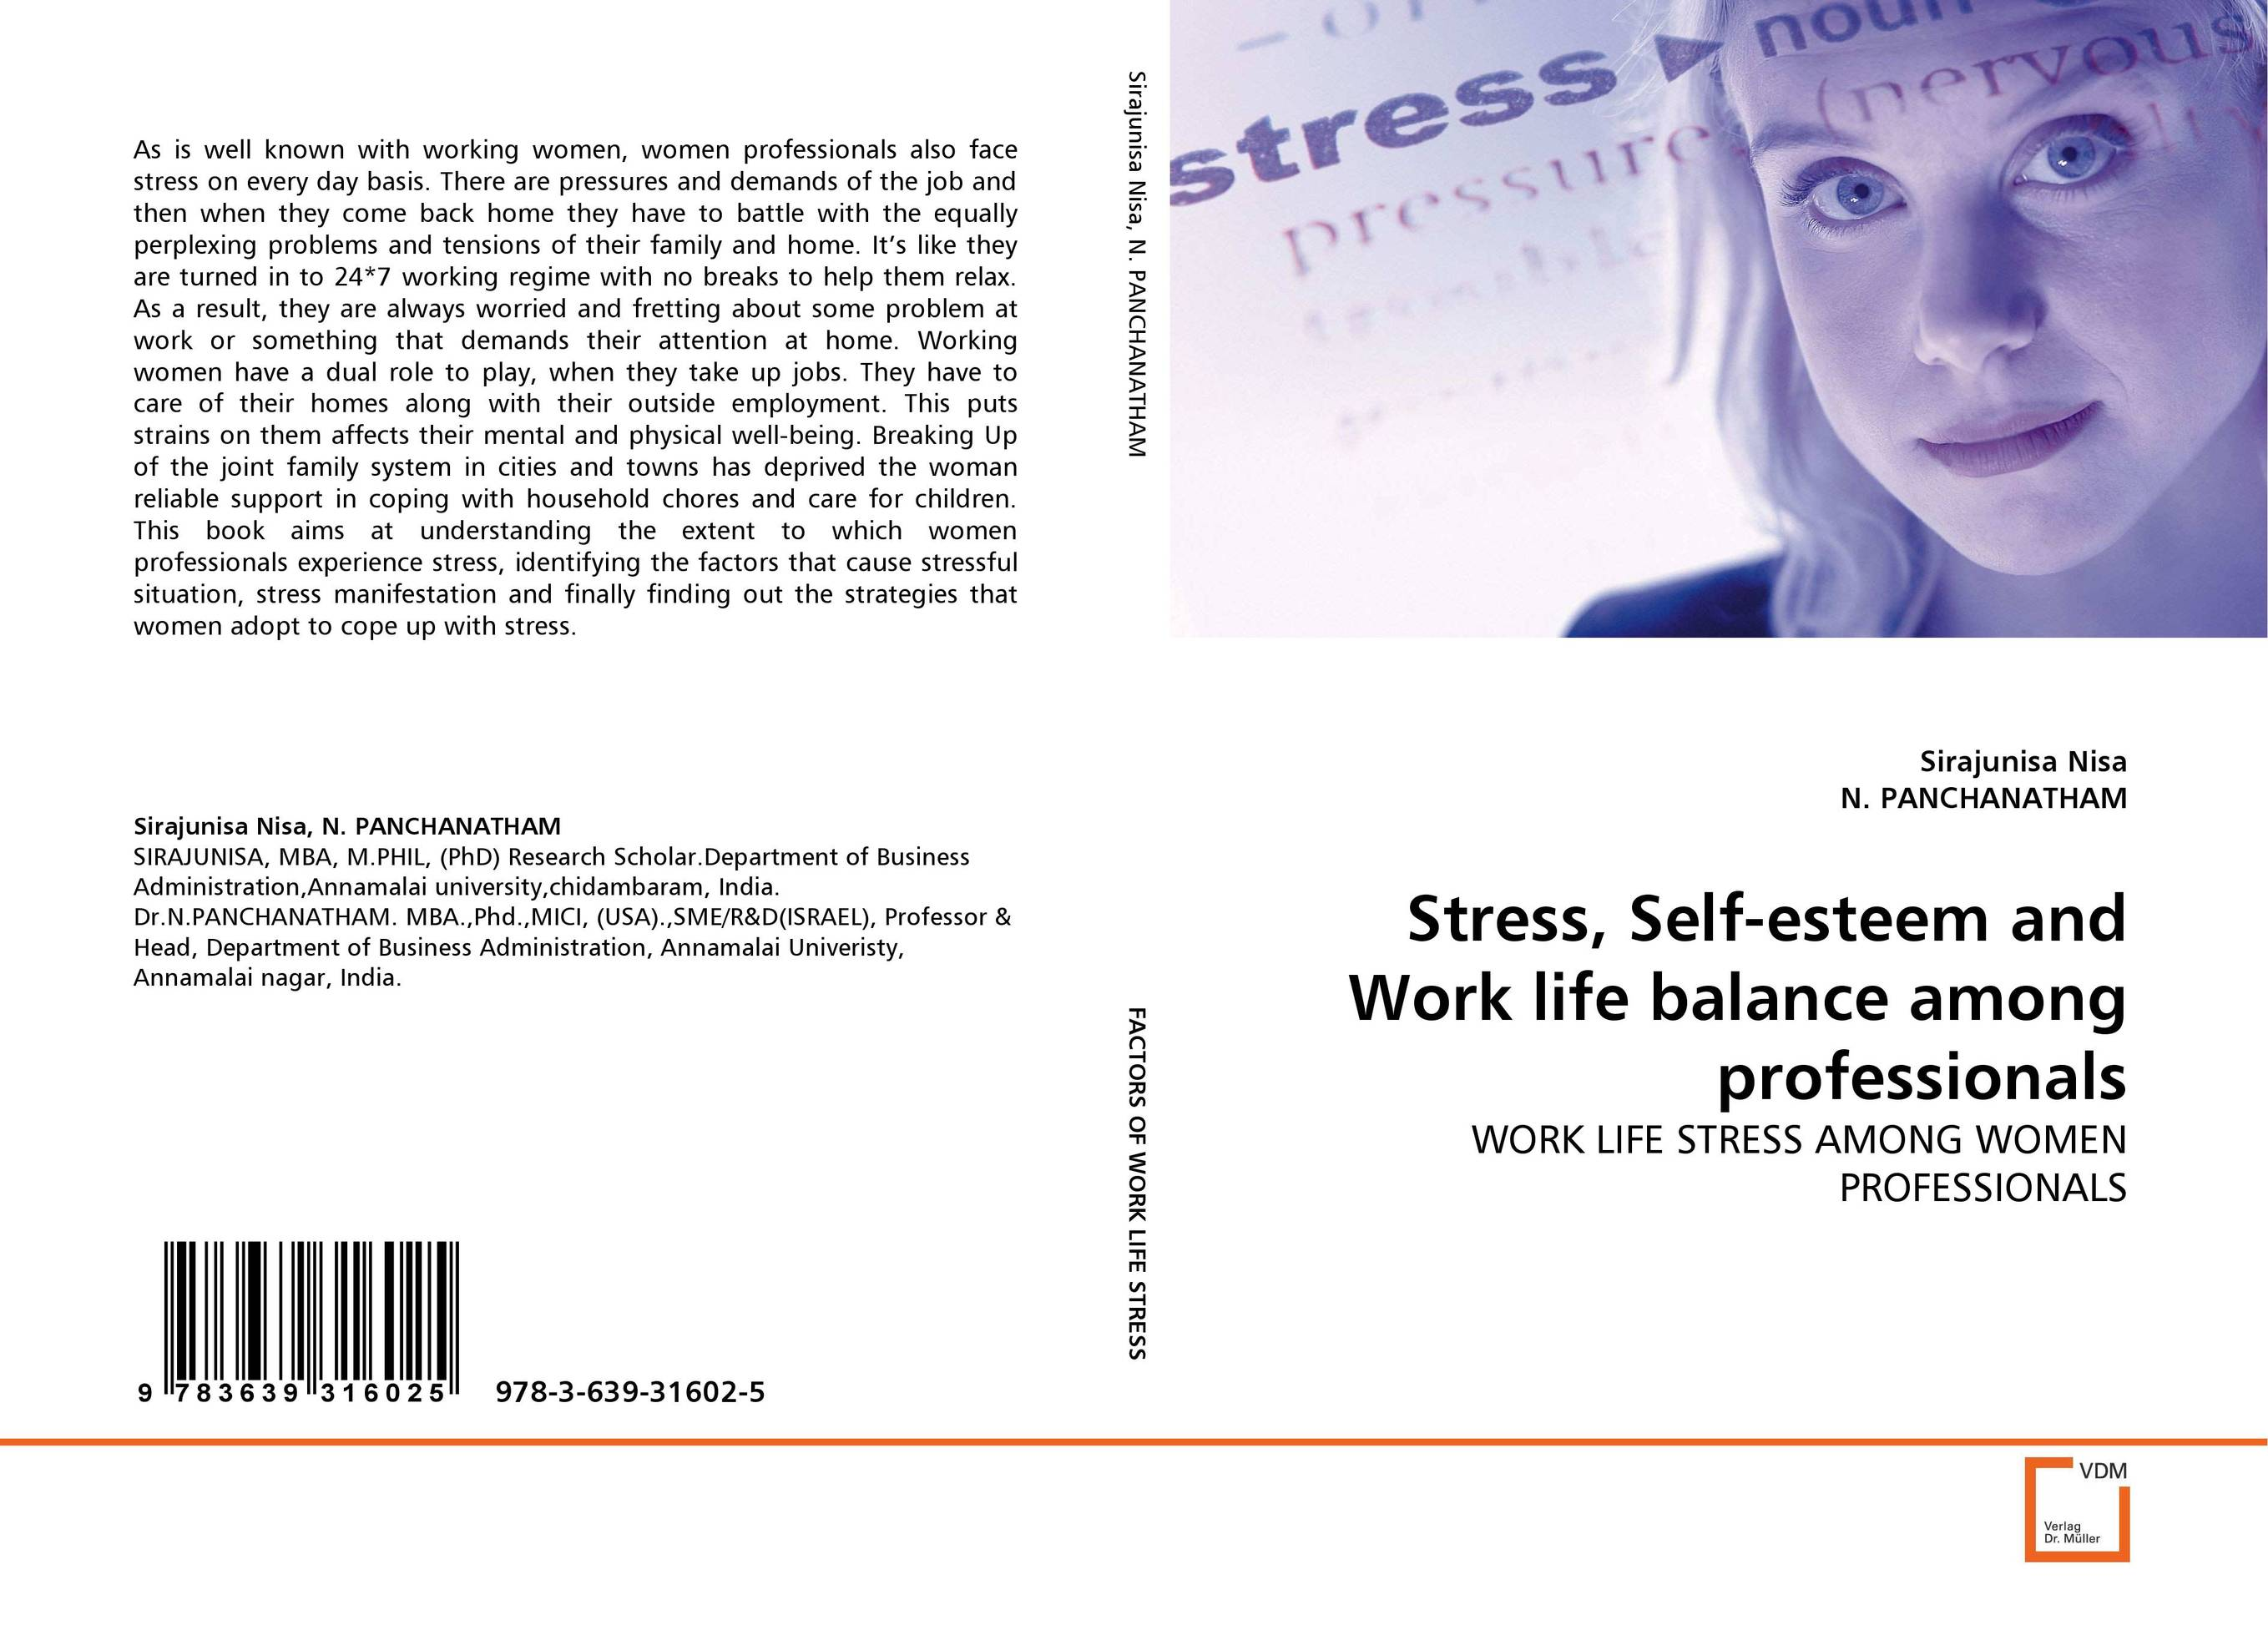 Stress, Self-esteem and Work life balance among professionals paula boehme the perceptions of work life balance benefits